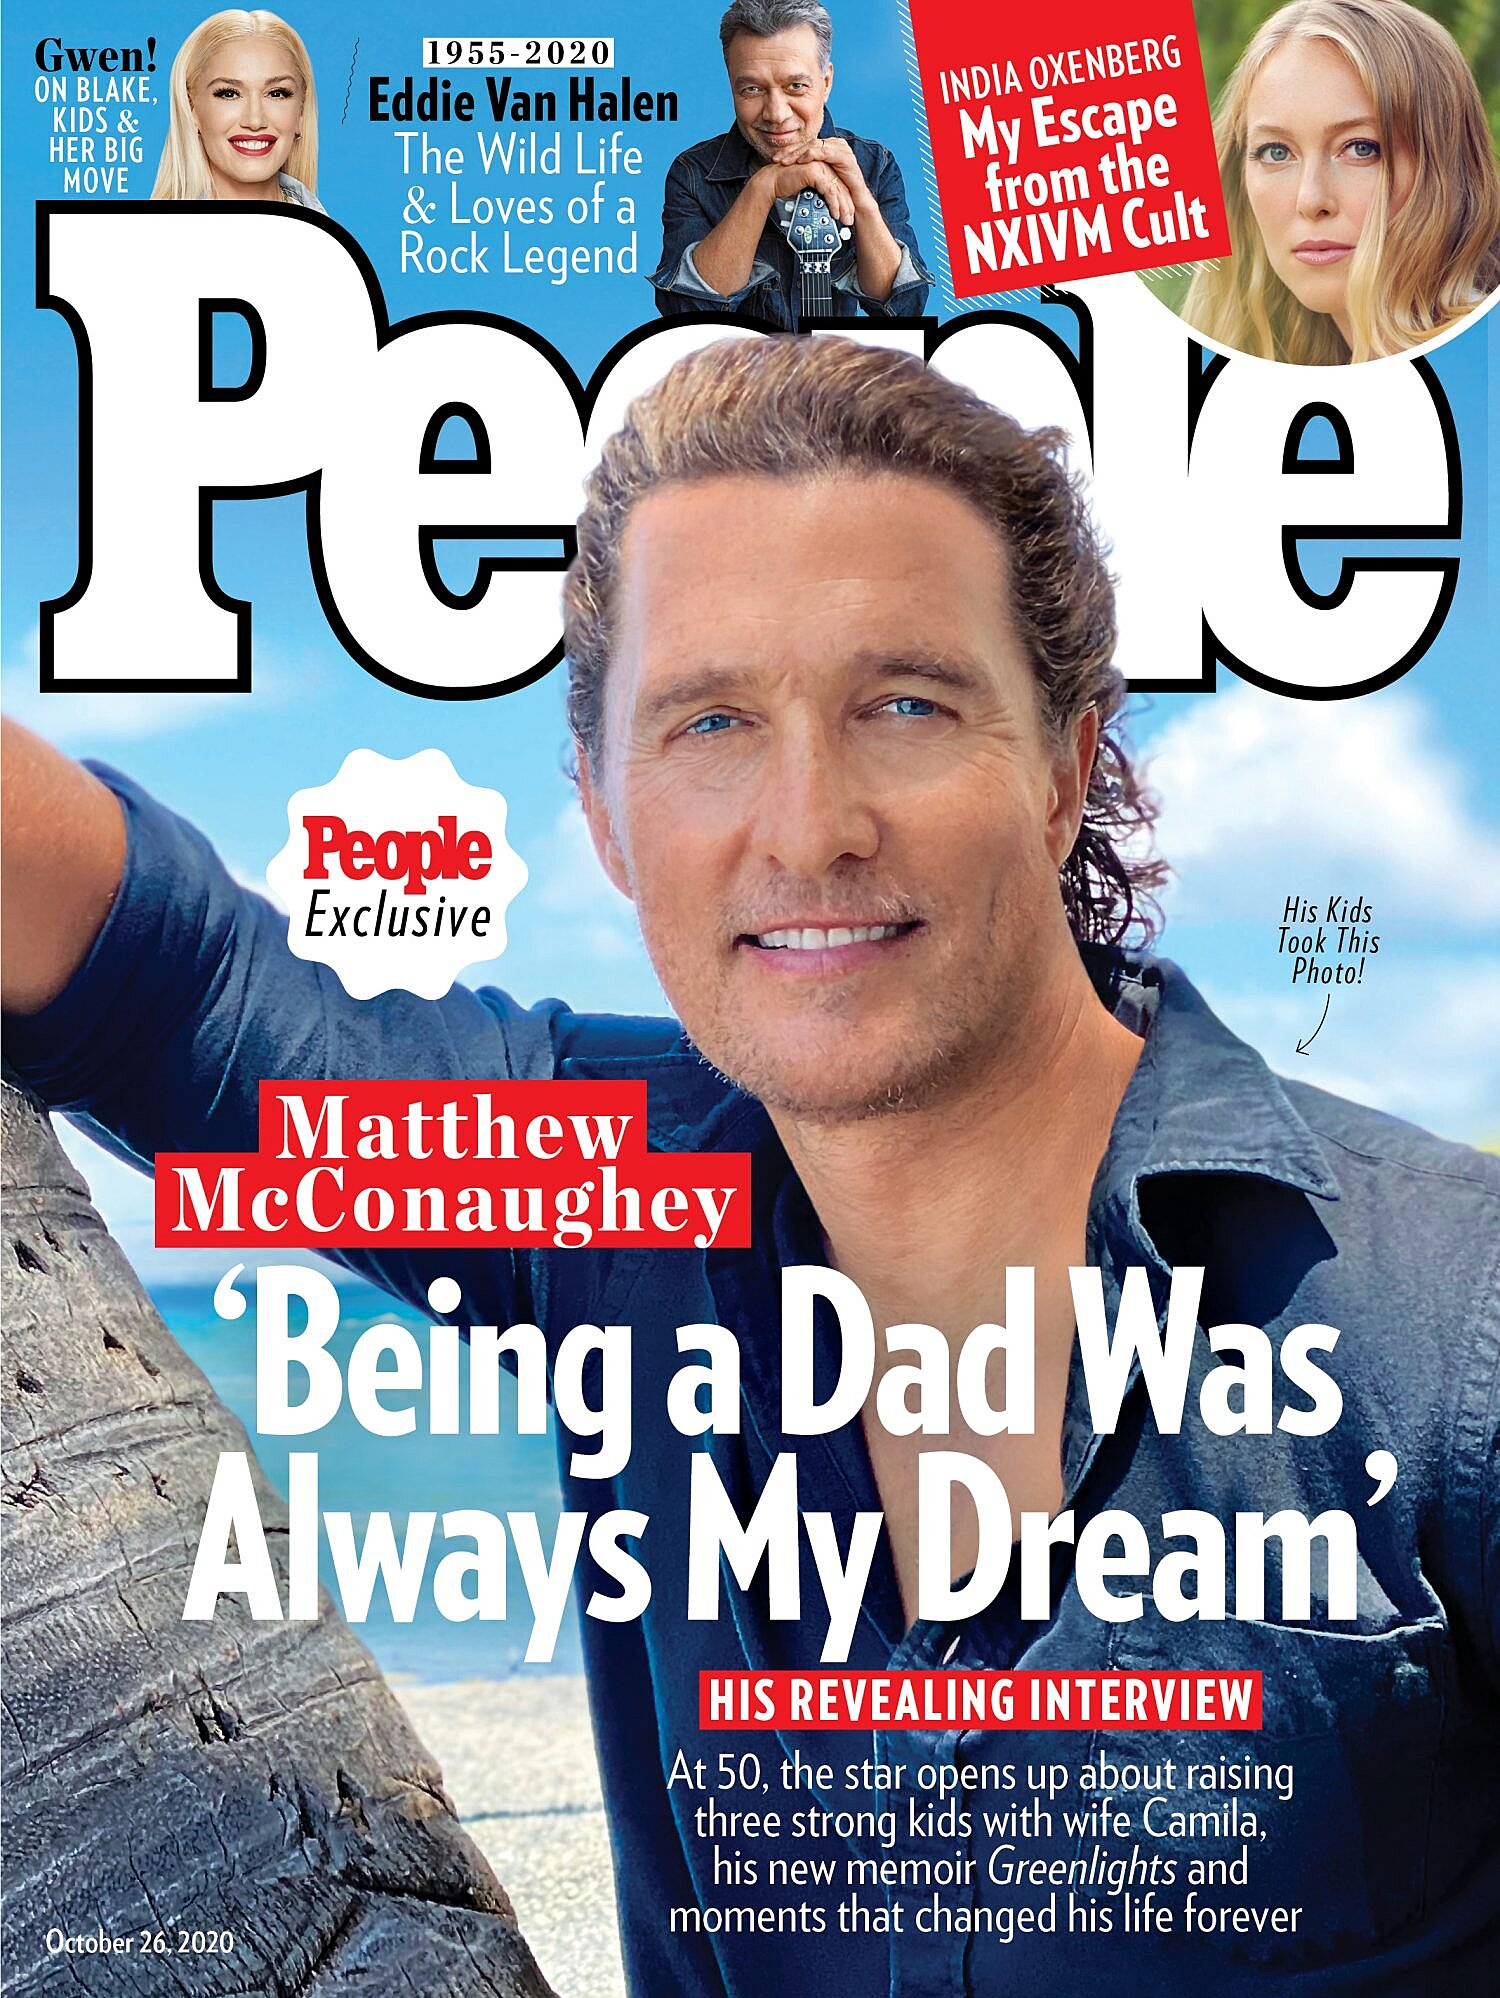 Matthew McConaughey on His Full Life with Wife Camila | PEOPLE.com